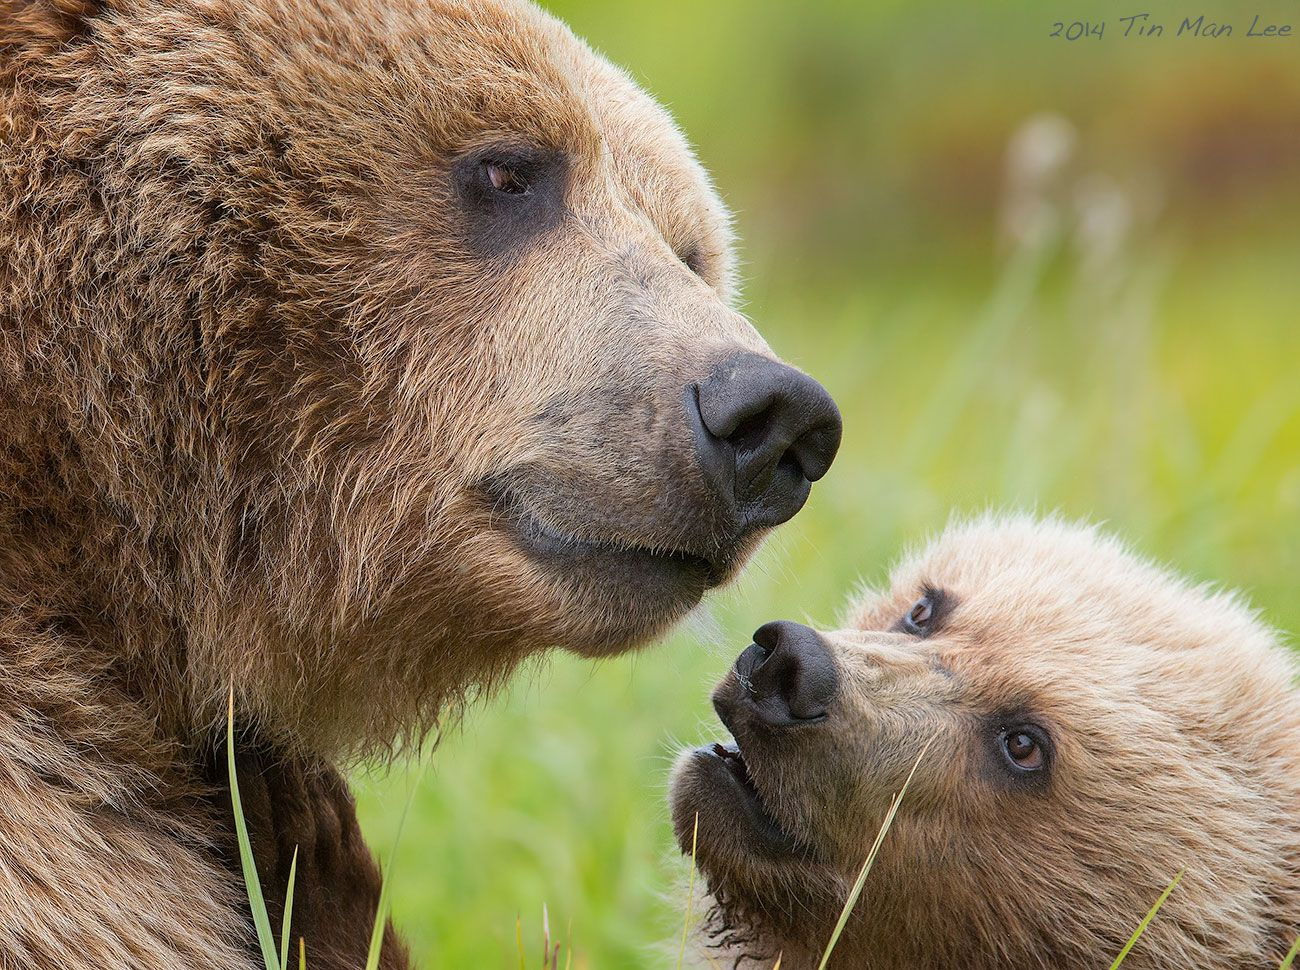 The Mama Bear Looked So Wise As If Listening To The Story